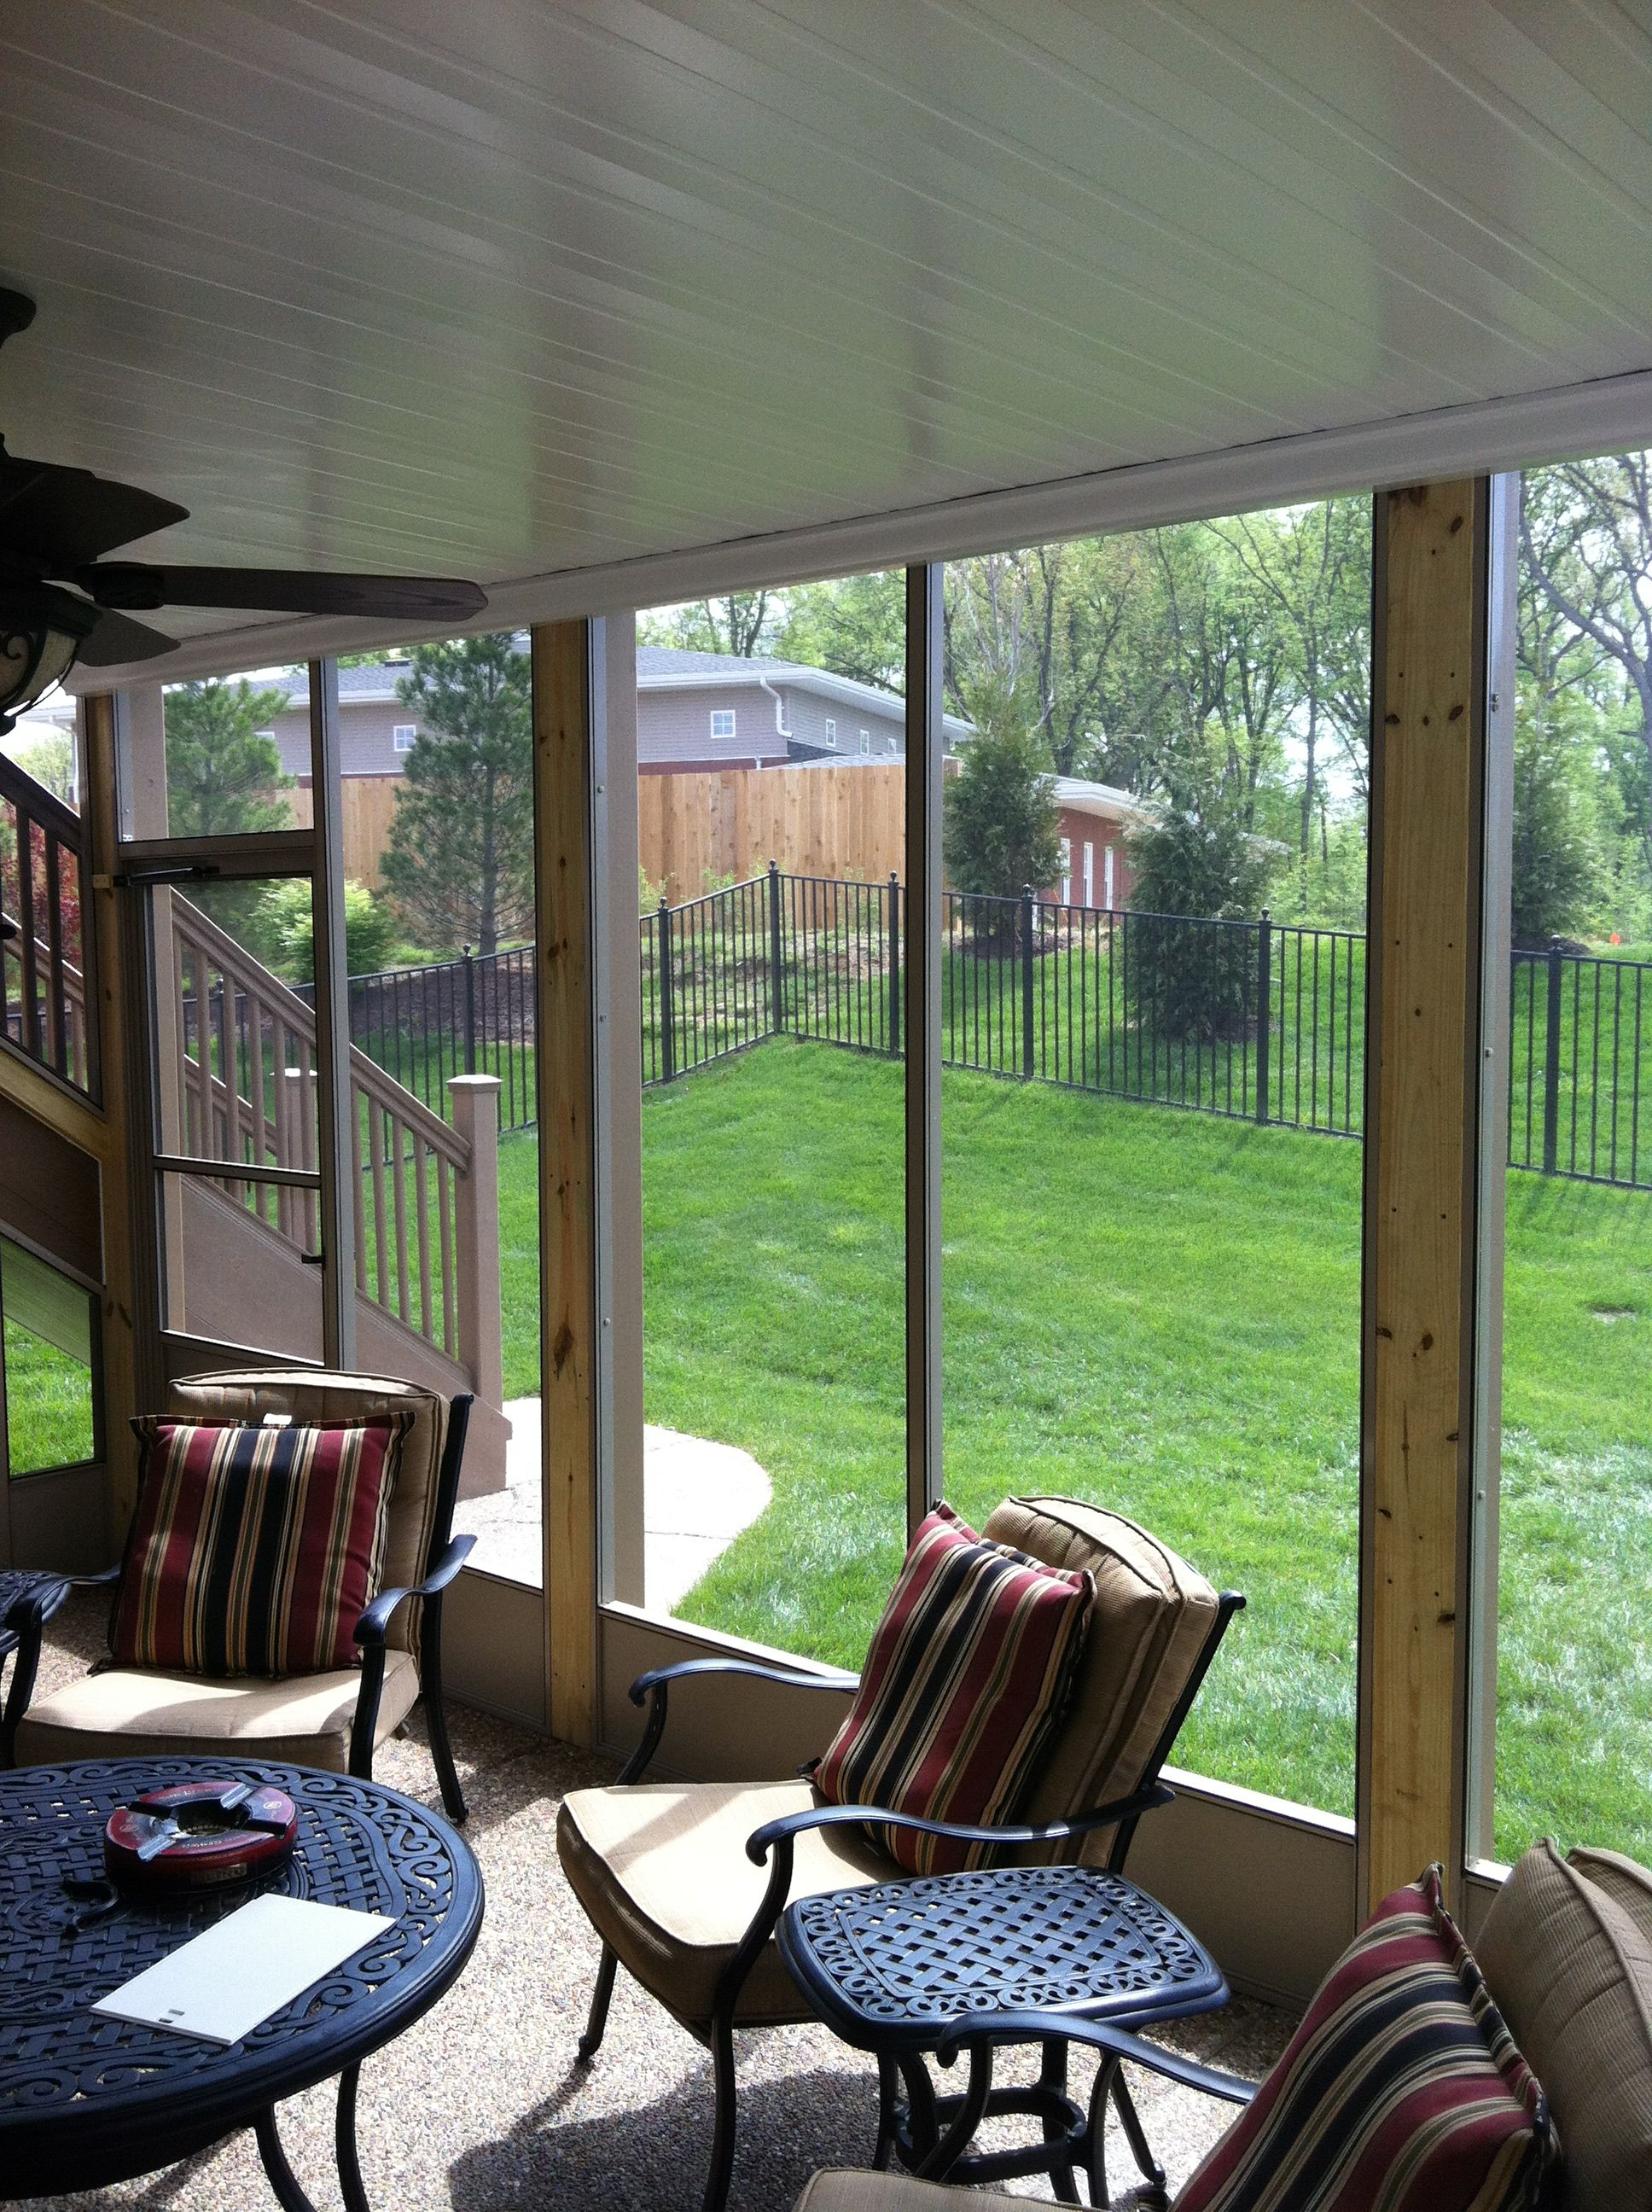 Waterproof Shades For Screened In Porch Tyres2c